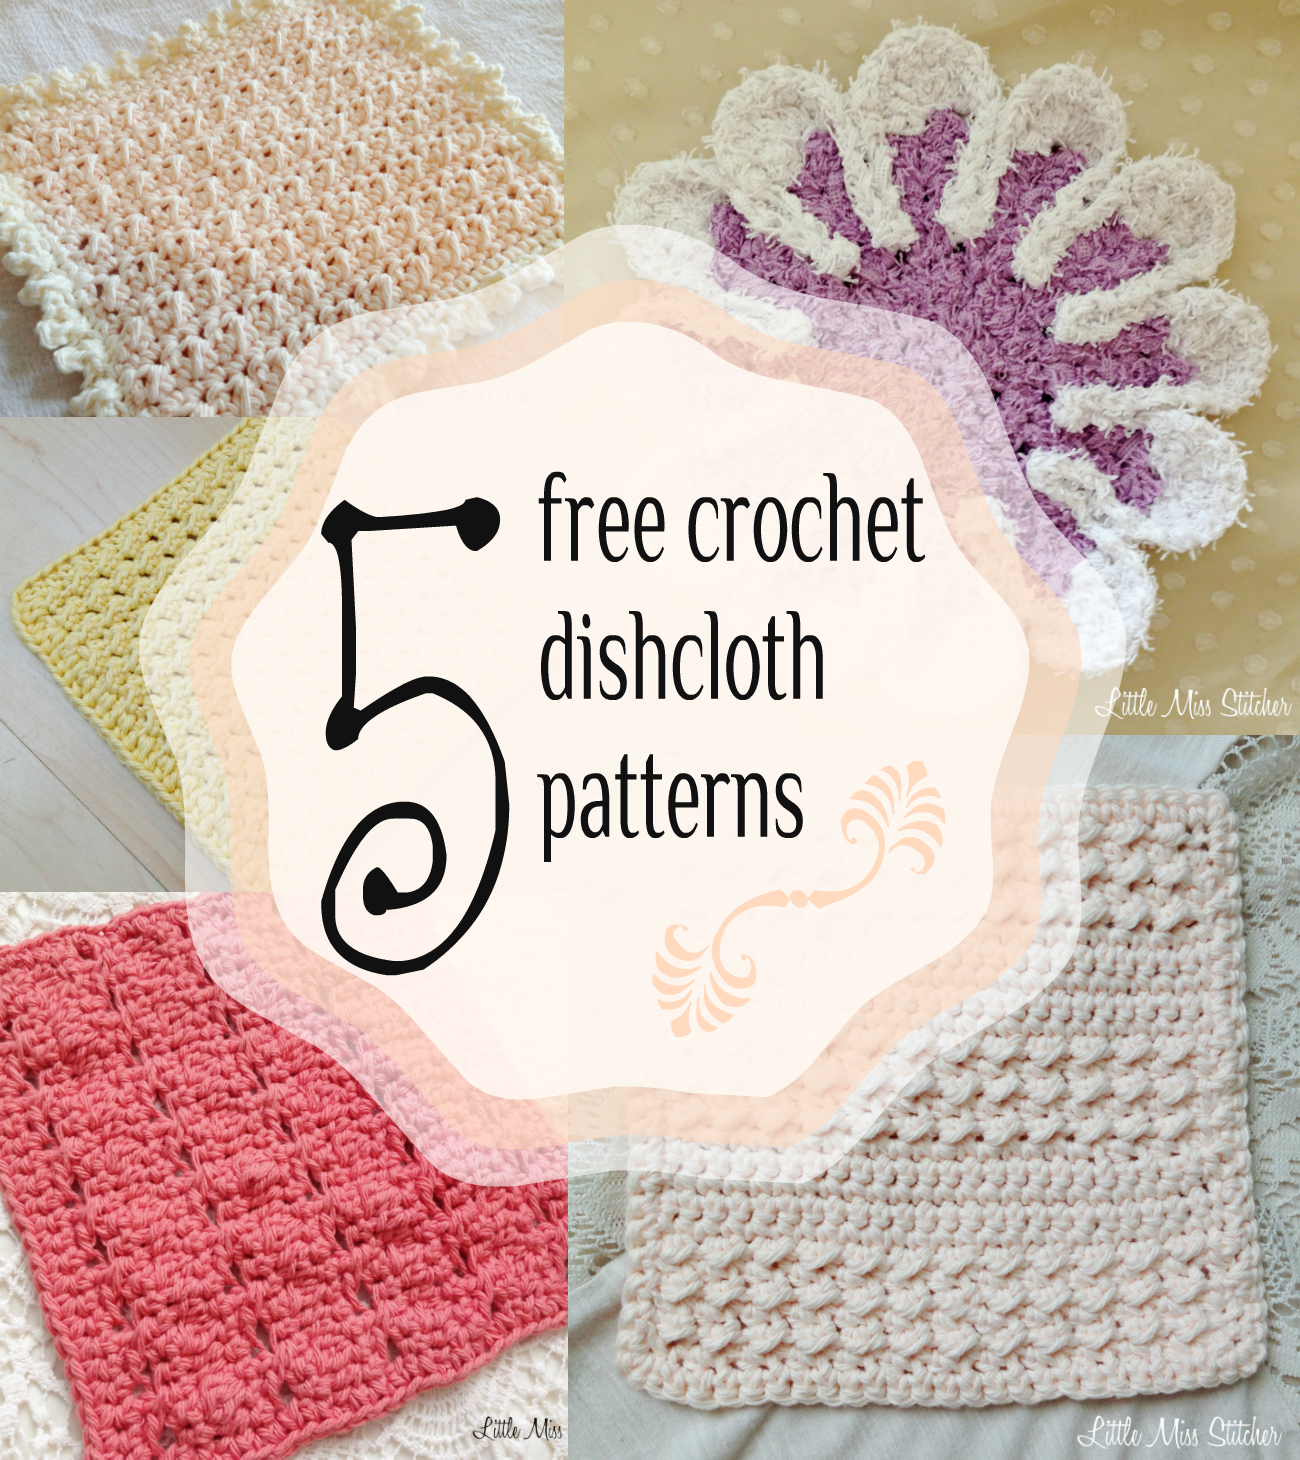 Little miss stitcher 5 free crochet dishcloth patterns about 2 months ago i share 5 free knit dishcloth patterns today i have 5 free crochet dishcloth patterns for all my crocheting friends bankloansurffo Image collections